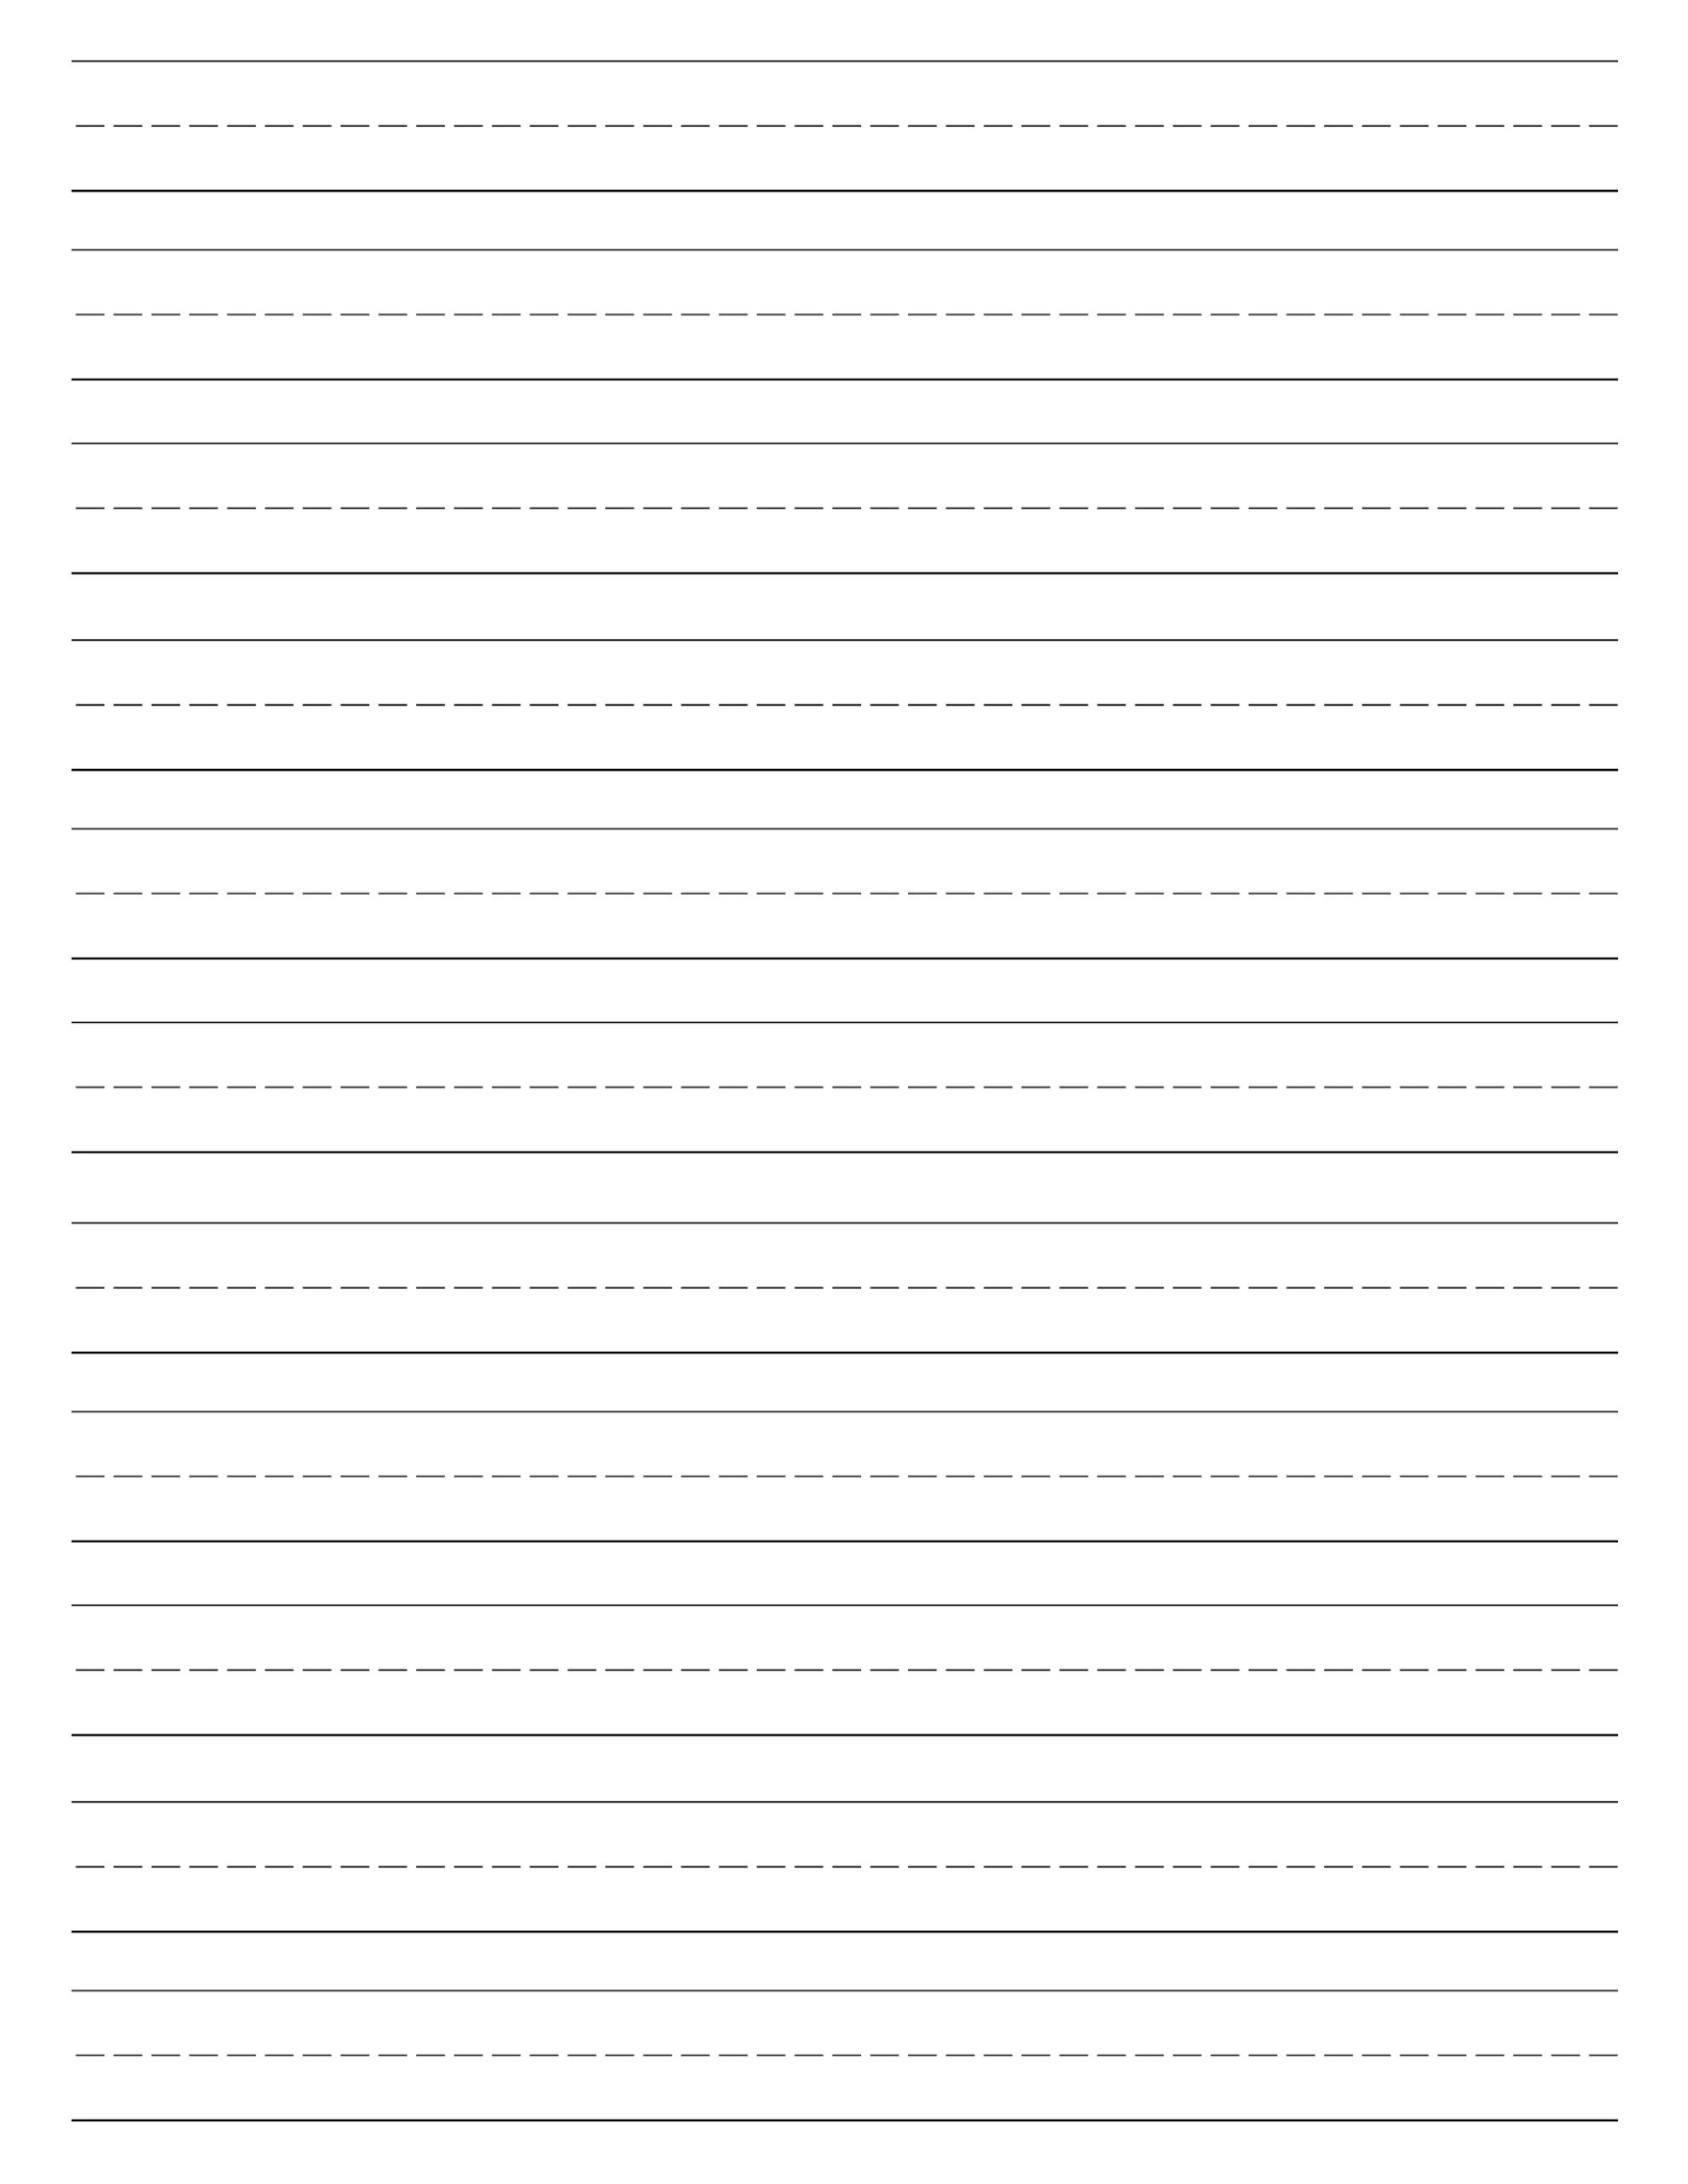 Worksheet For Teaching Cursive Handwriting